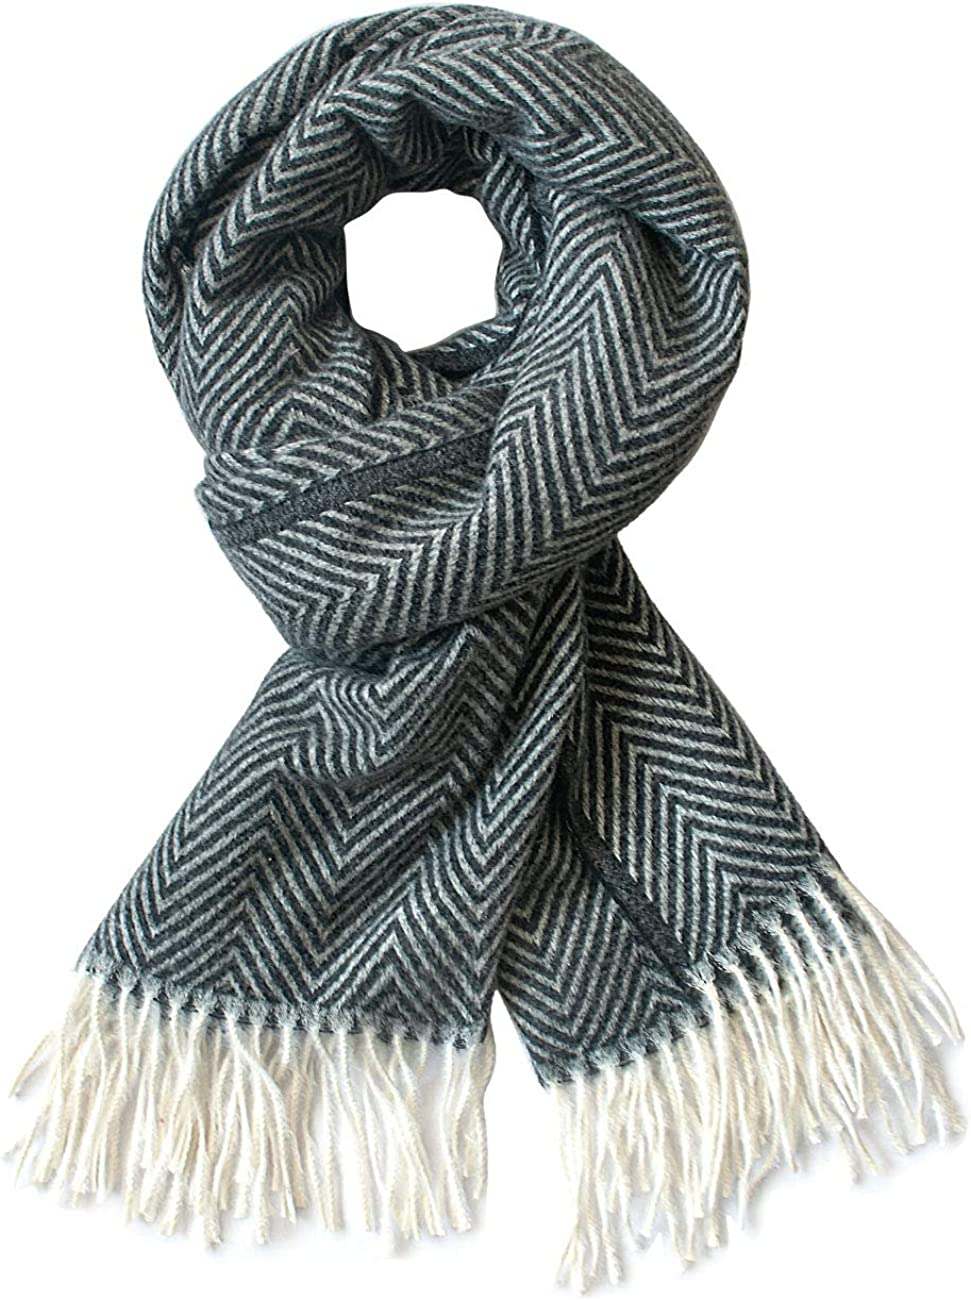 Dahlia Opening large release sale Women's Winter Scarf - Long Cashmere Cheap mail order specialty store Soft Synthetic